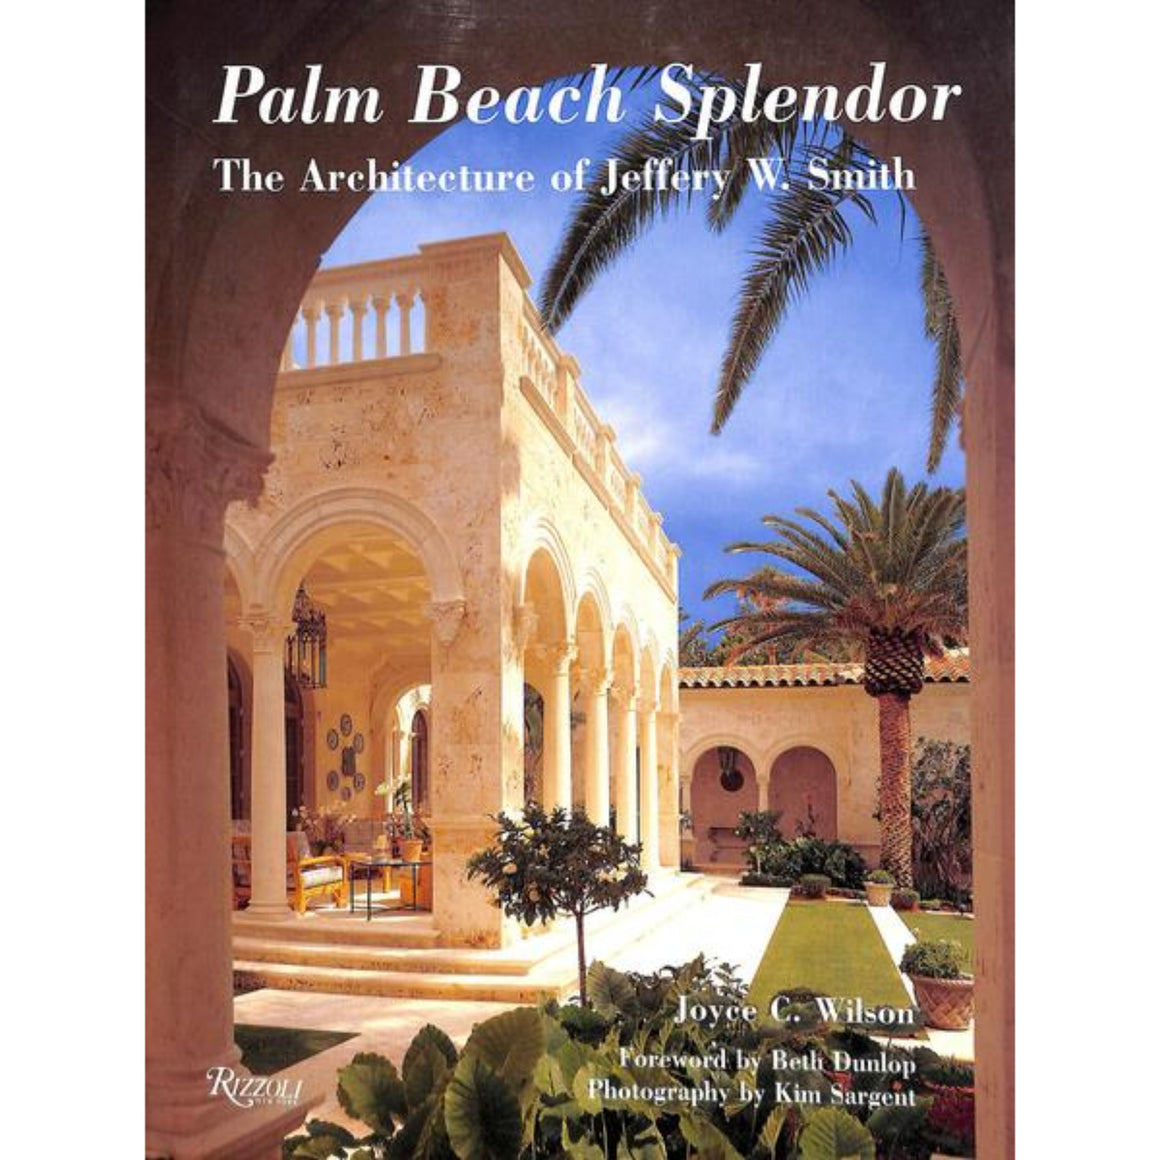 'Palm Beach Splendor: The Architecture of Jeffrey W. Smith'